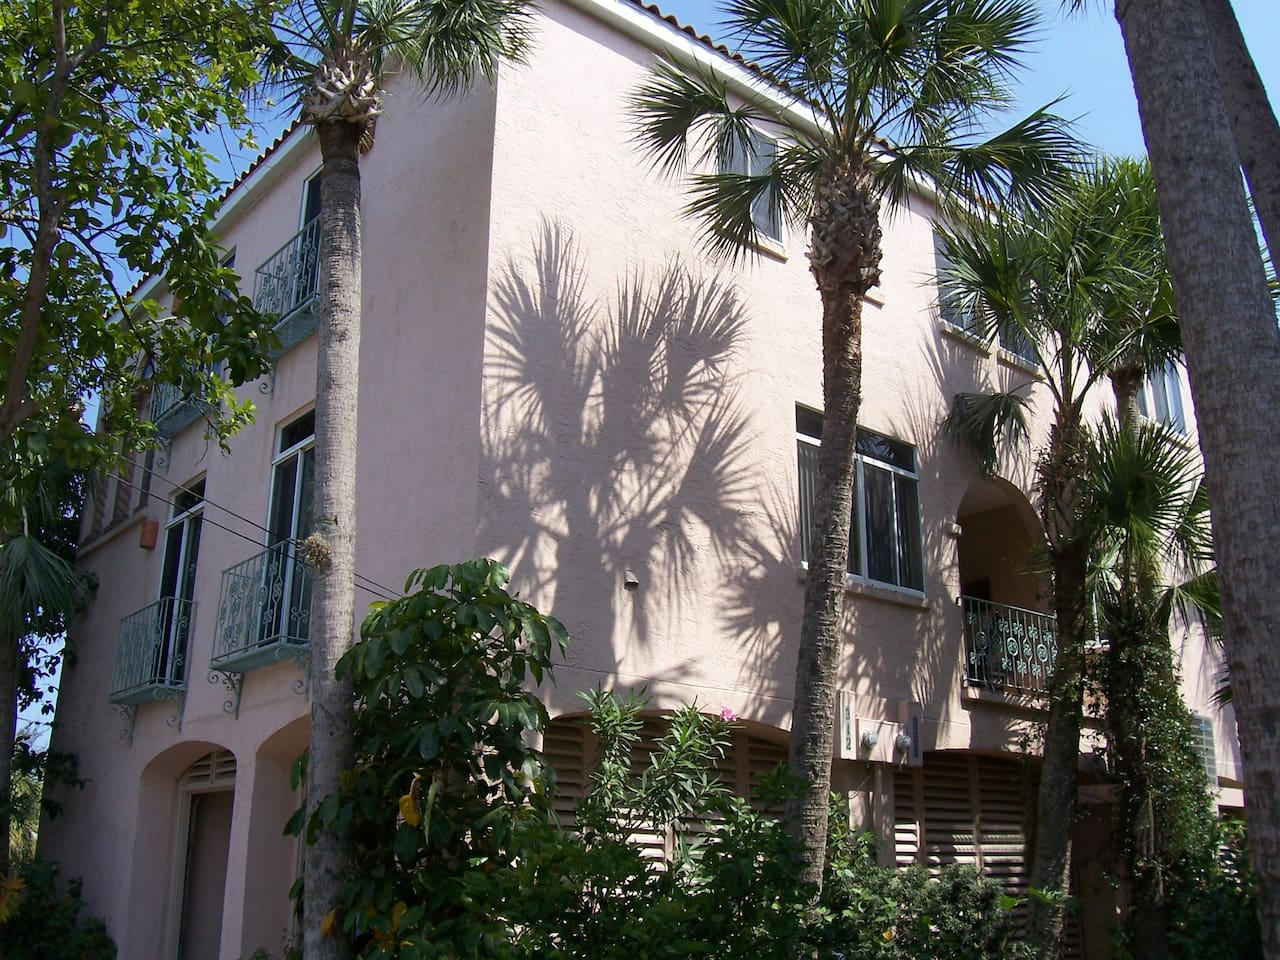 The Shells Villa - 3BR, 2.5 Bath Townhouse - 230 feet to the beach!